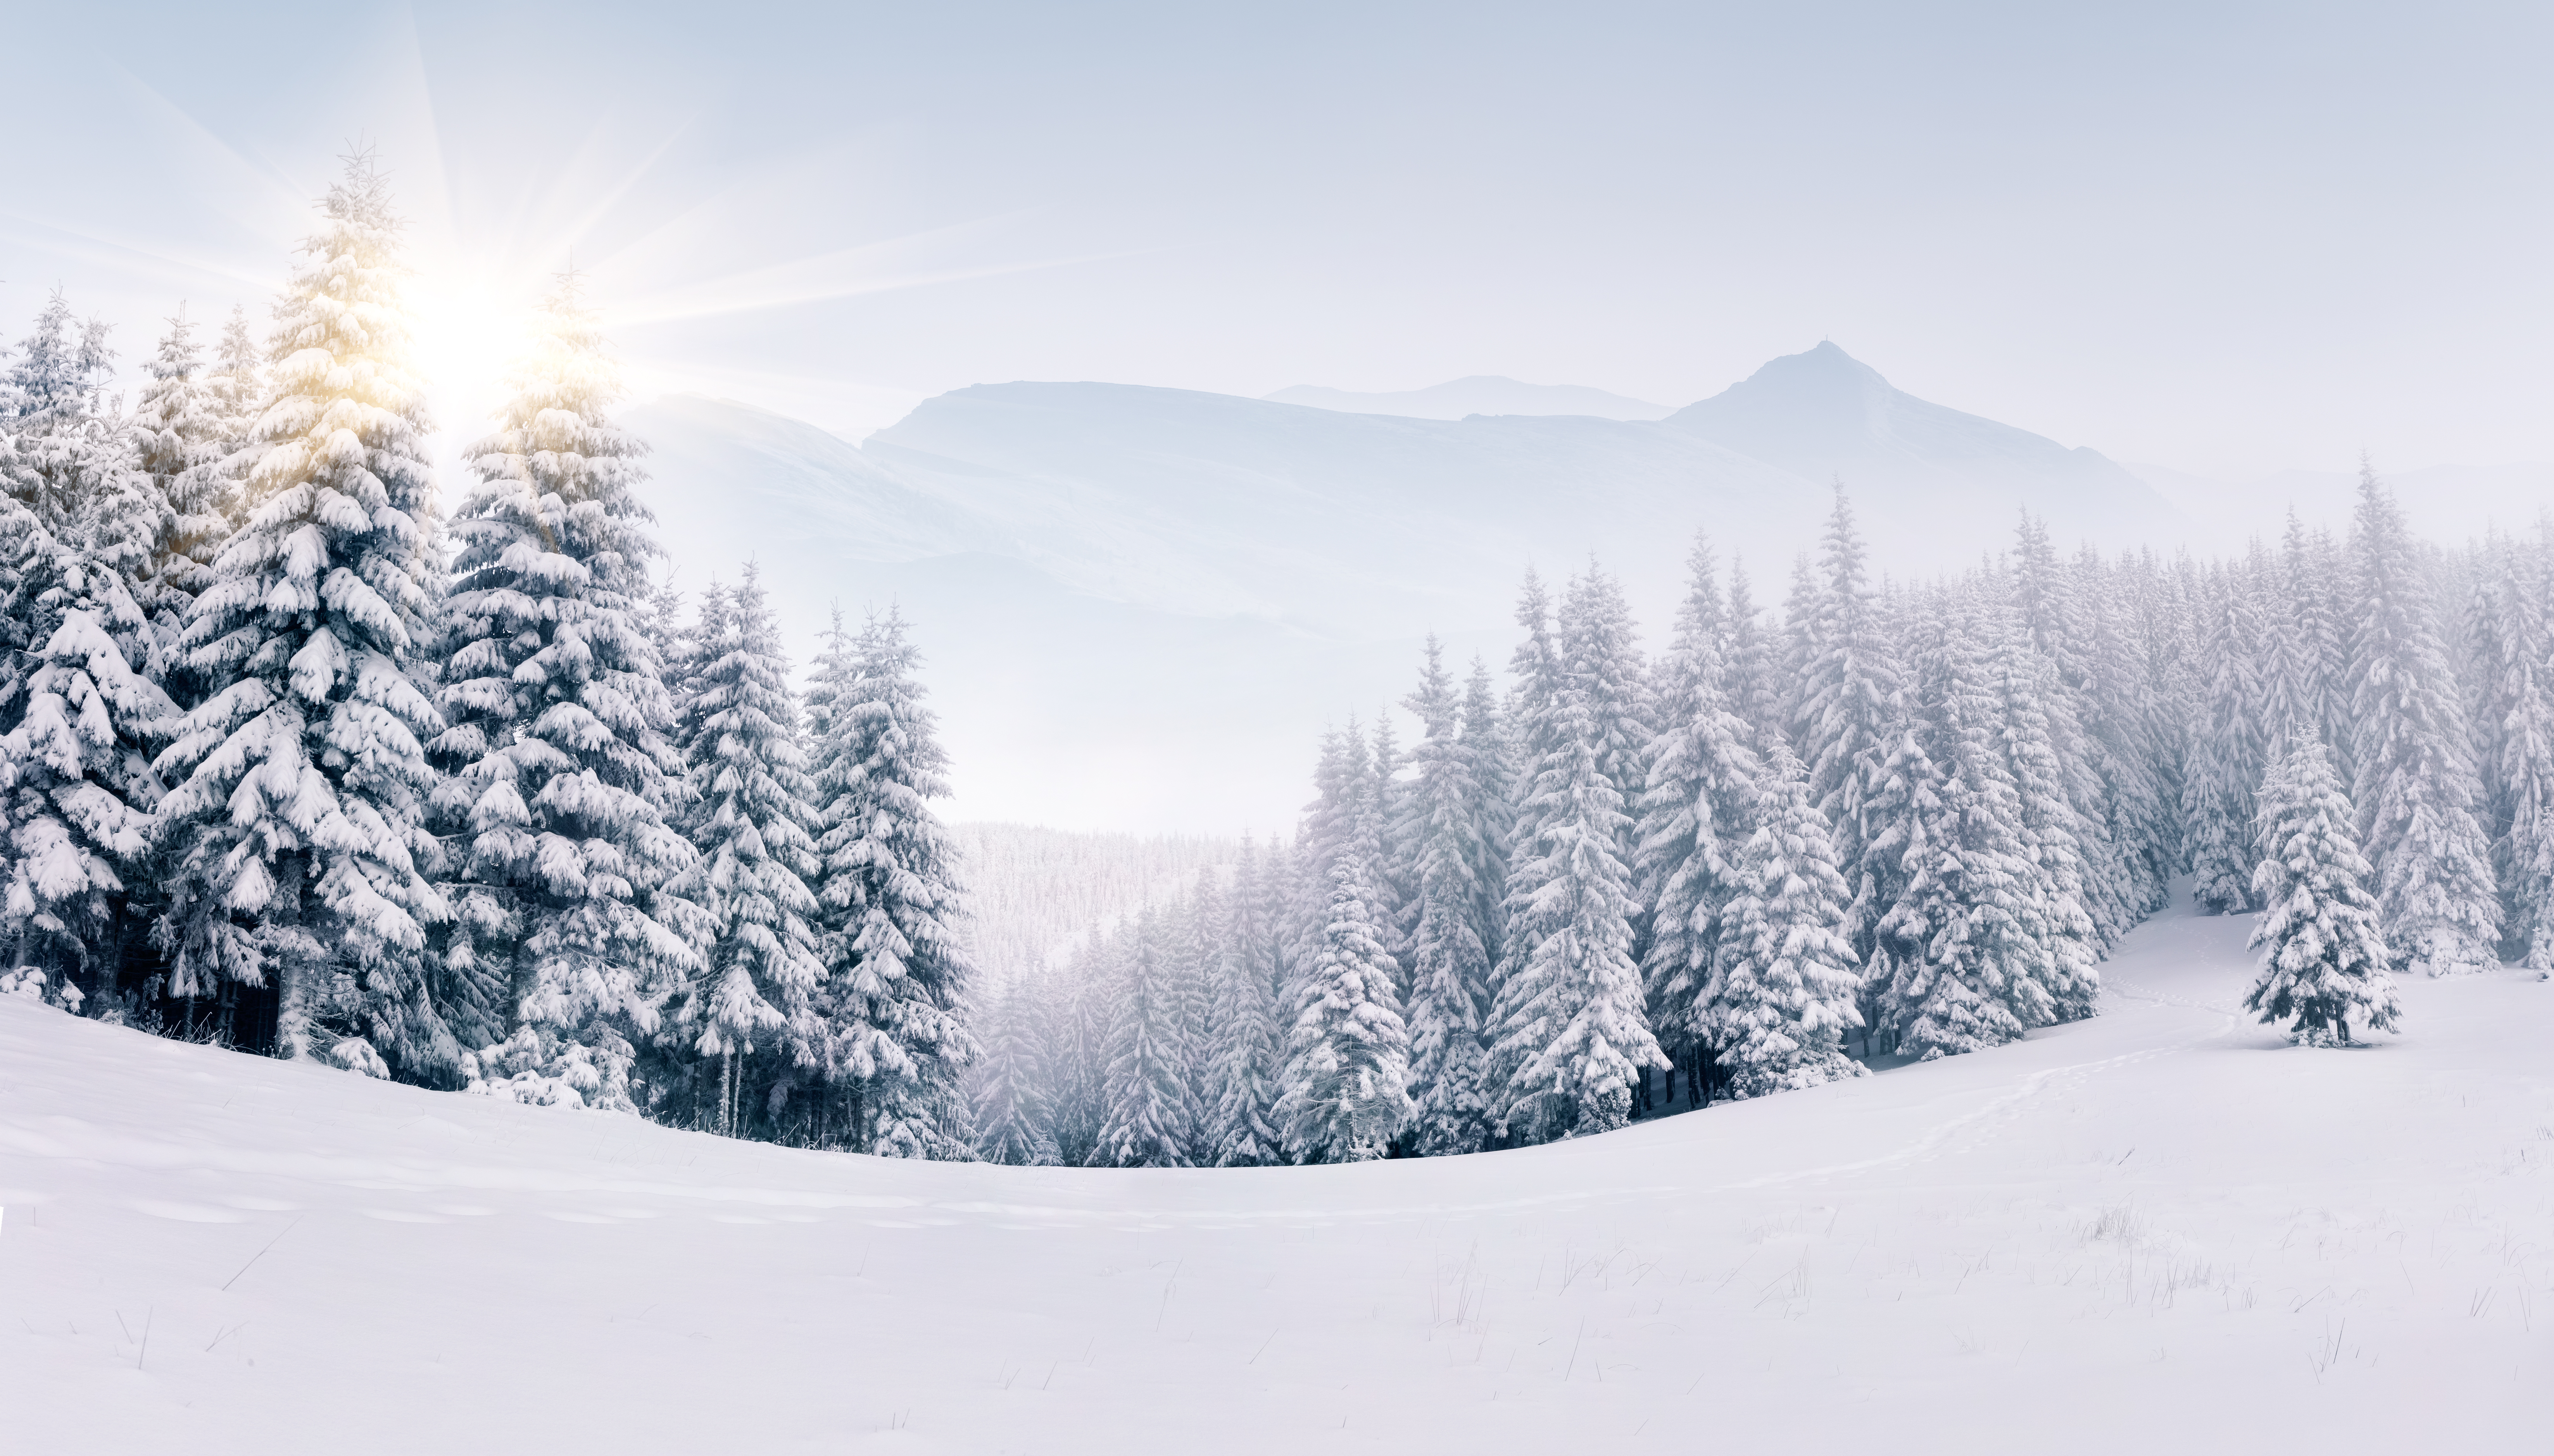 winter 5k retina ultra hd wallpaper and background 6588x3757